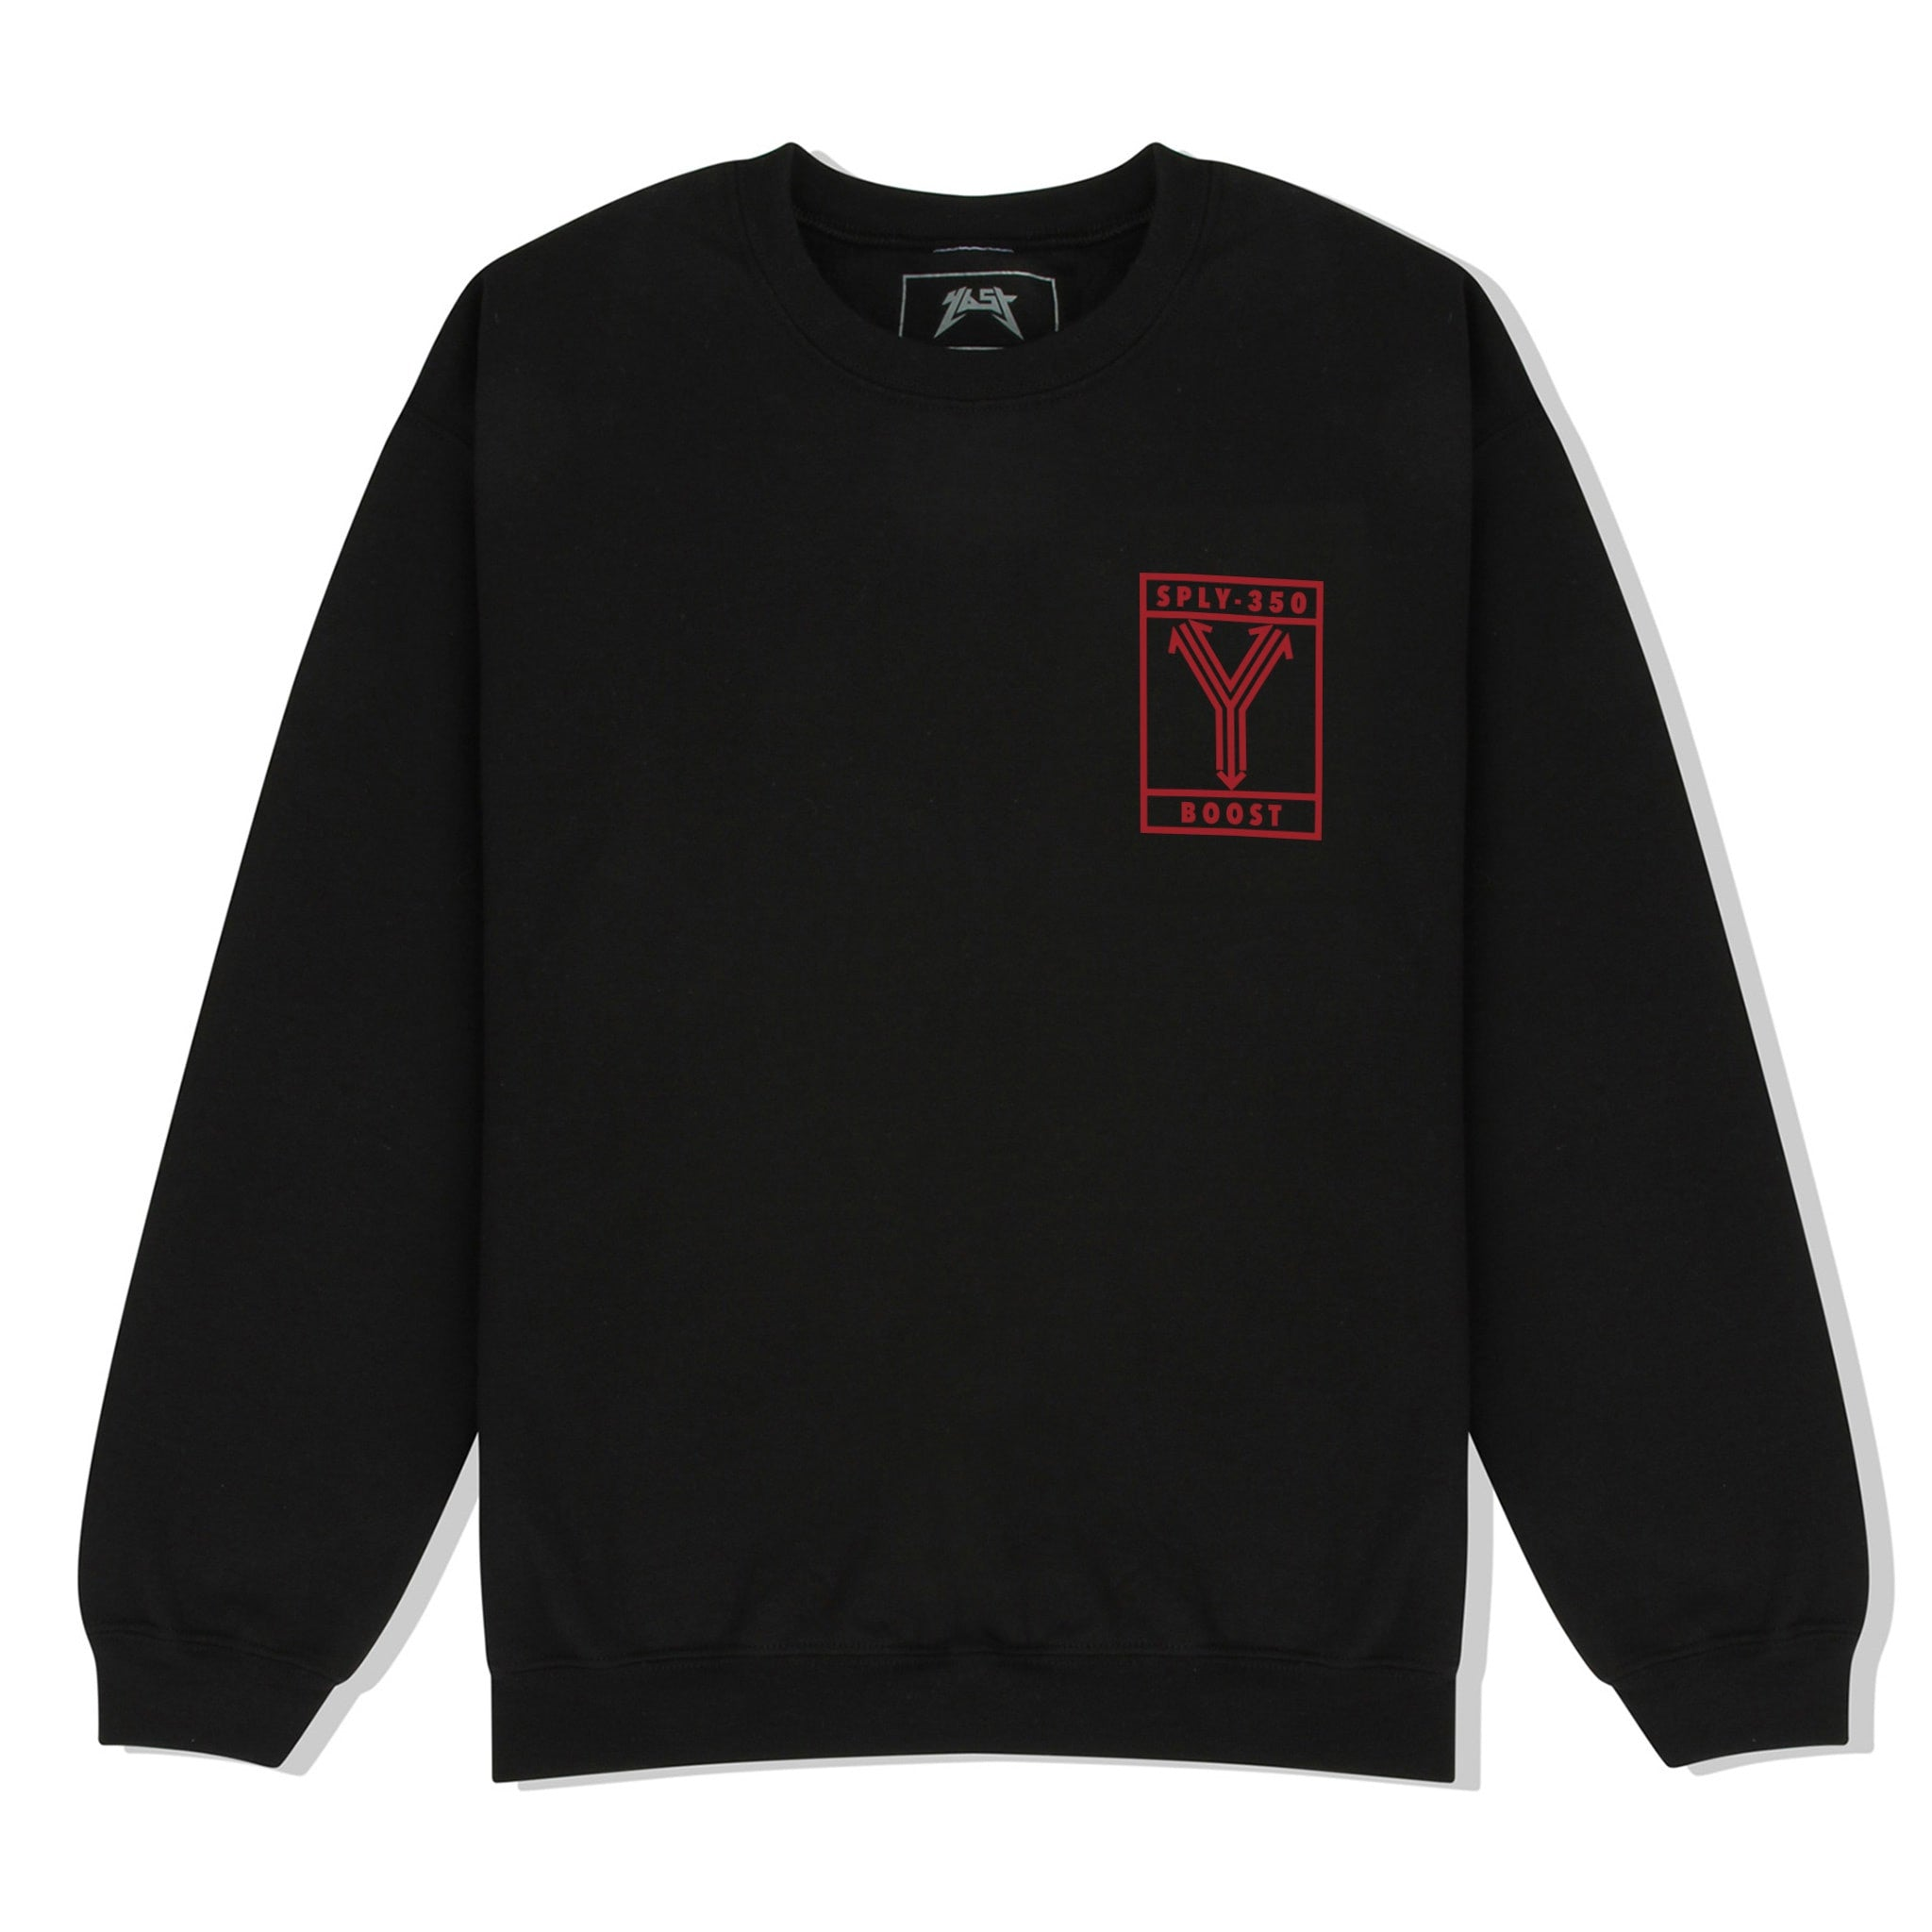 YBST Yalabasas Sweater Black - Front